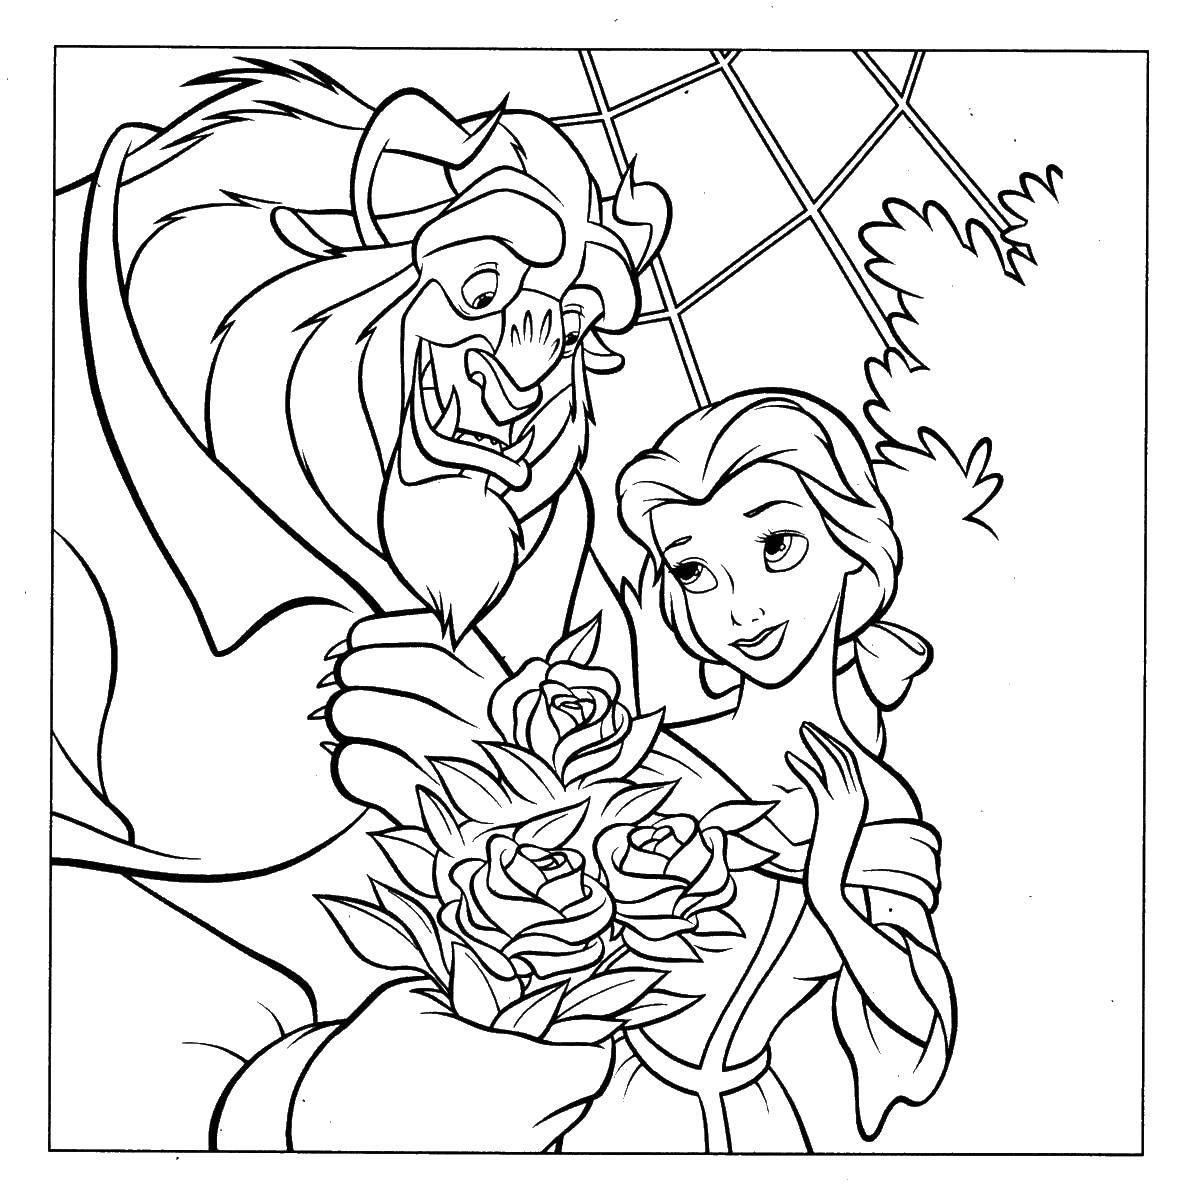 Coloring sheet beauty and the beast Download Nature, forest, mountains, palm,.  Print